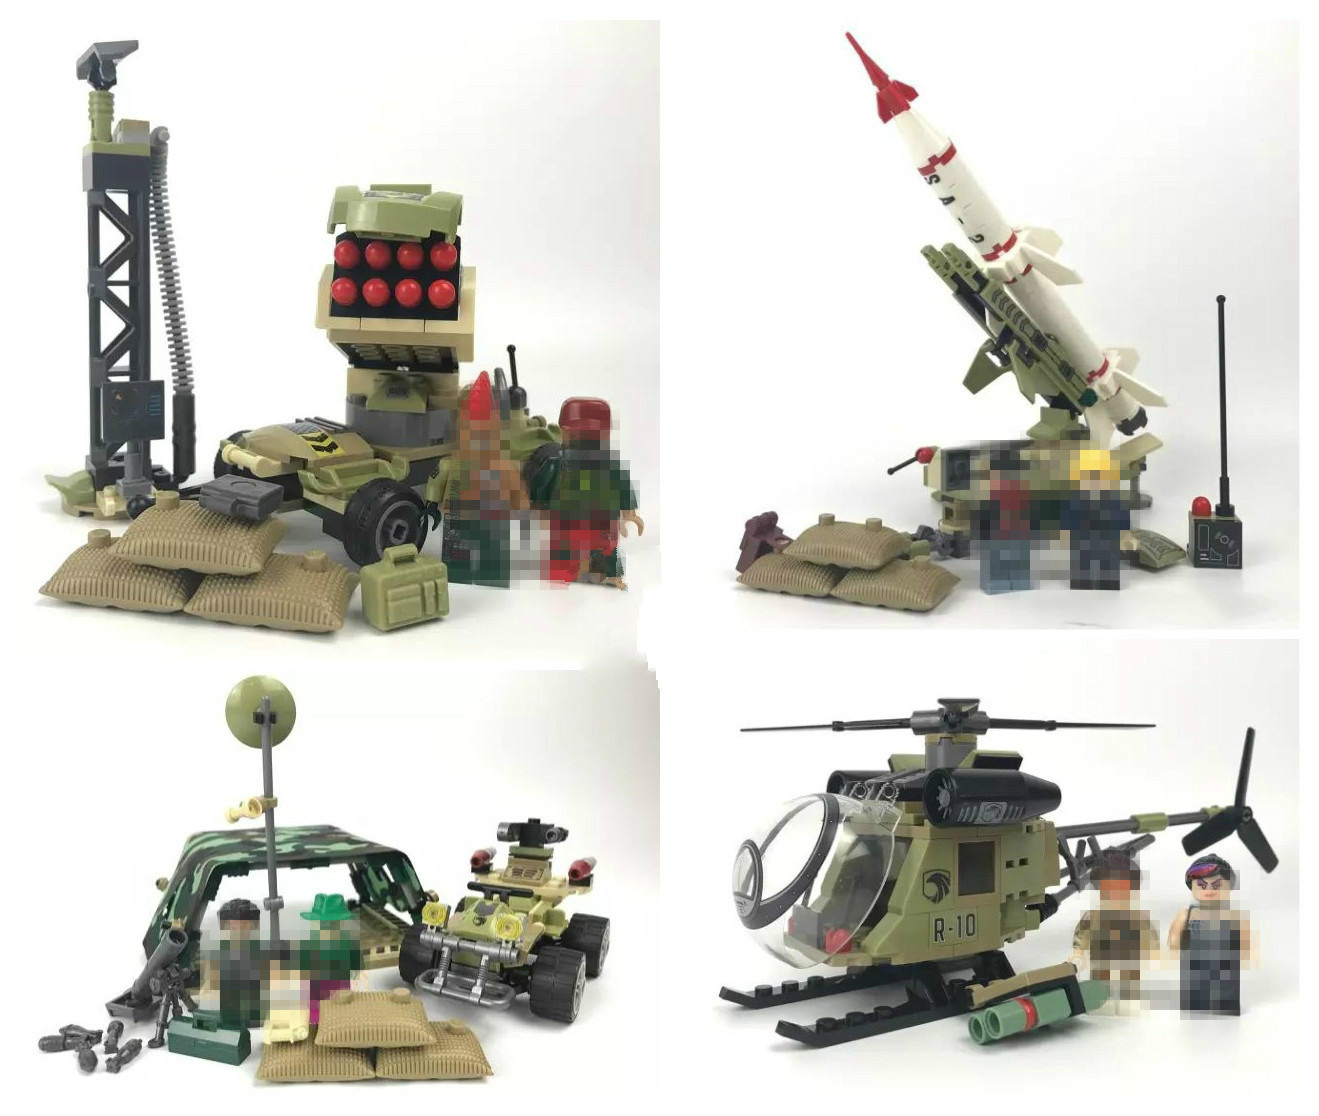 Hot Sale 4in1 Military Army Black Gold Pursuit Rocket Gun Car Helicopter Building Block Brick Figures Toy DIY Model Boys Gift футболка toy machine black sect army